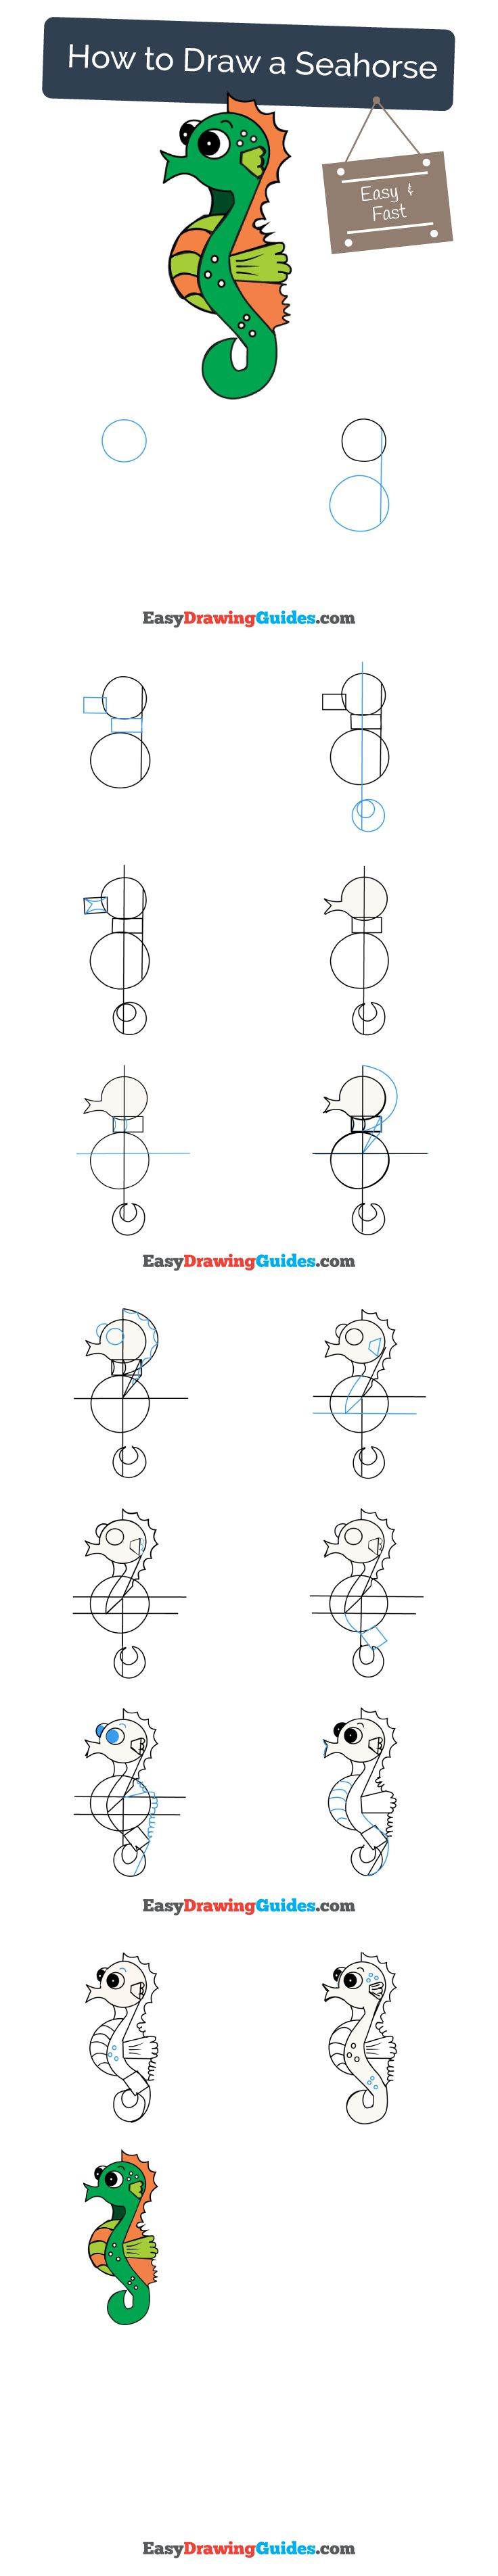 Learn How to Draw a Seahorse: Easy Step-by-Step Drawing Tutorial for Kids and Beginners. #seahorse #drawing. See the full tutorial at https://easydrawingguides.com/how-to-draw-a-seahorse/